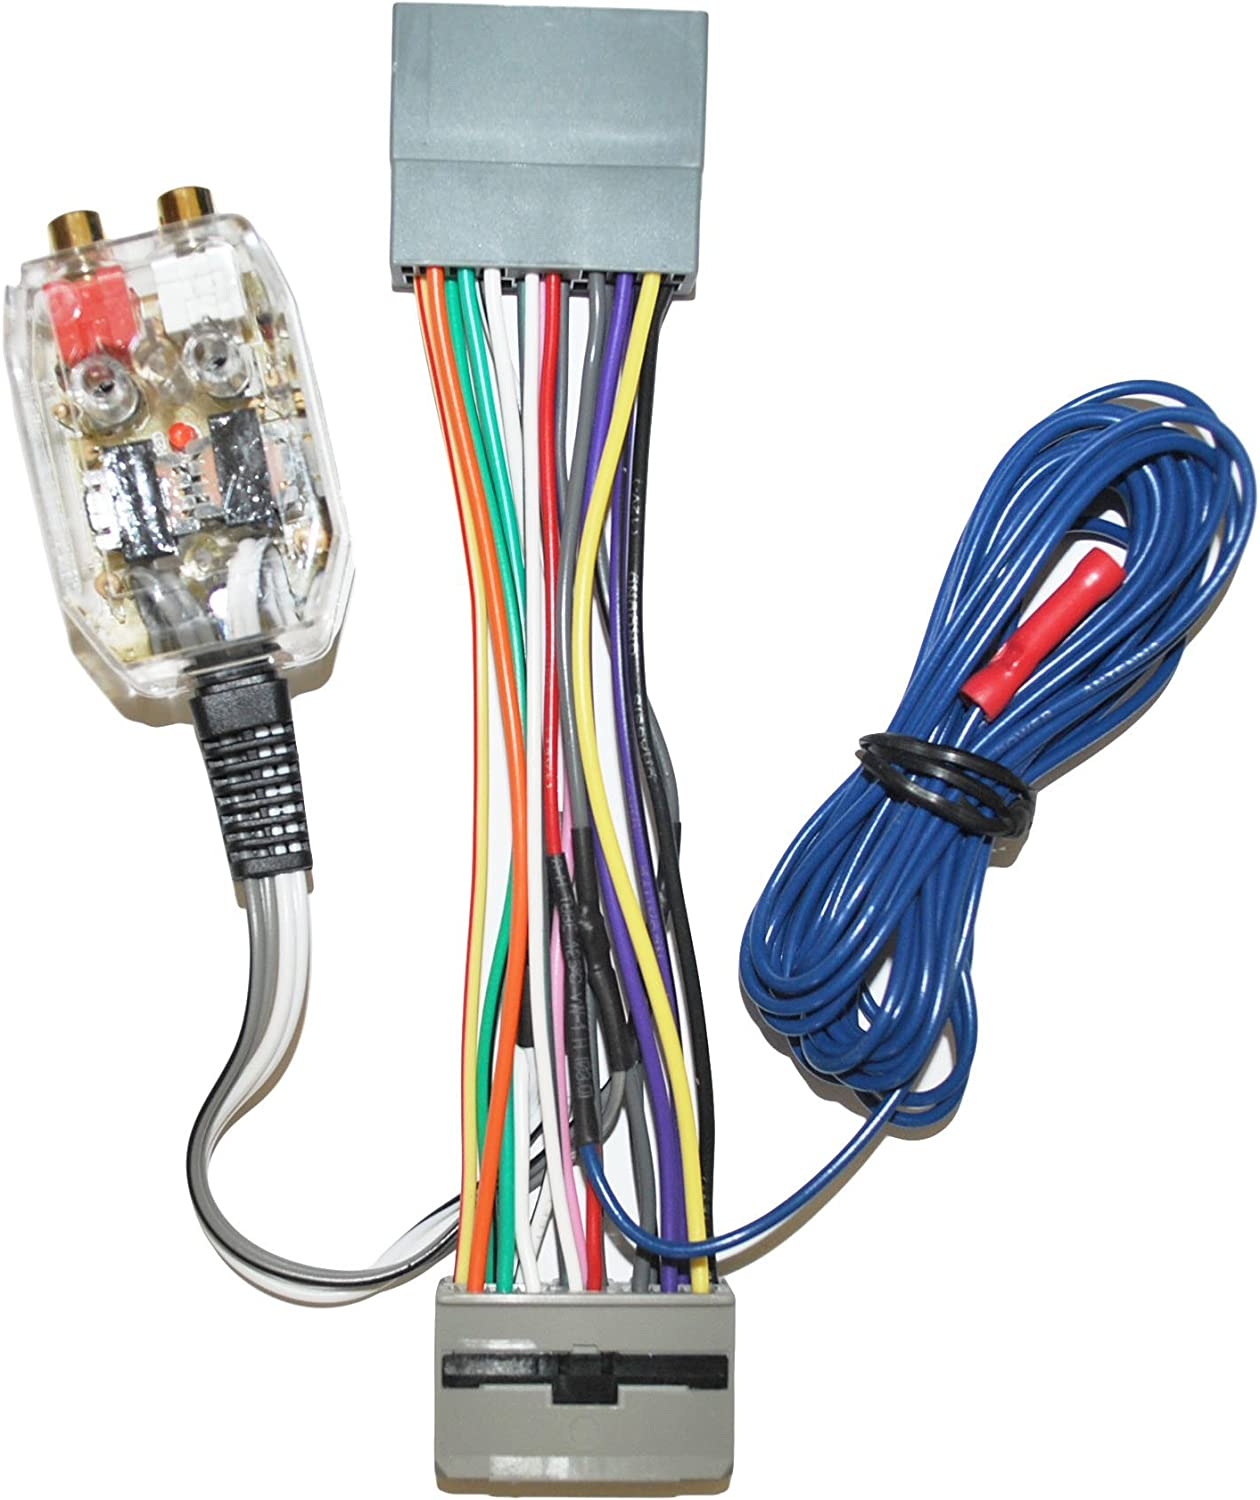 CAR STEREO RADIO REPLACEMENT FACTORY INTERFACE W// WIRING HARNESS ADAPTER PLUG